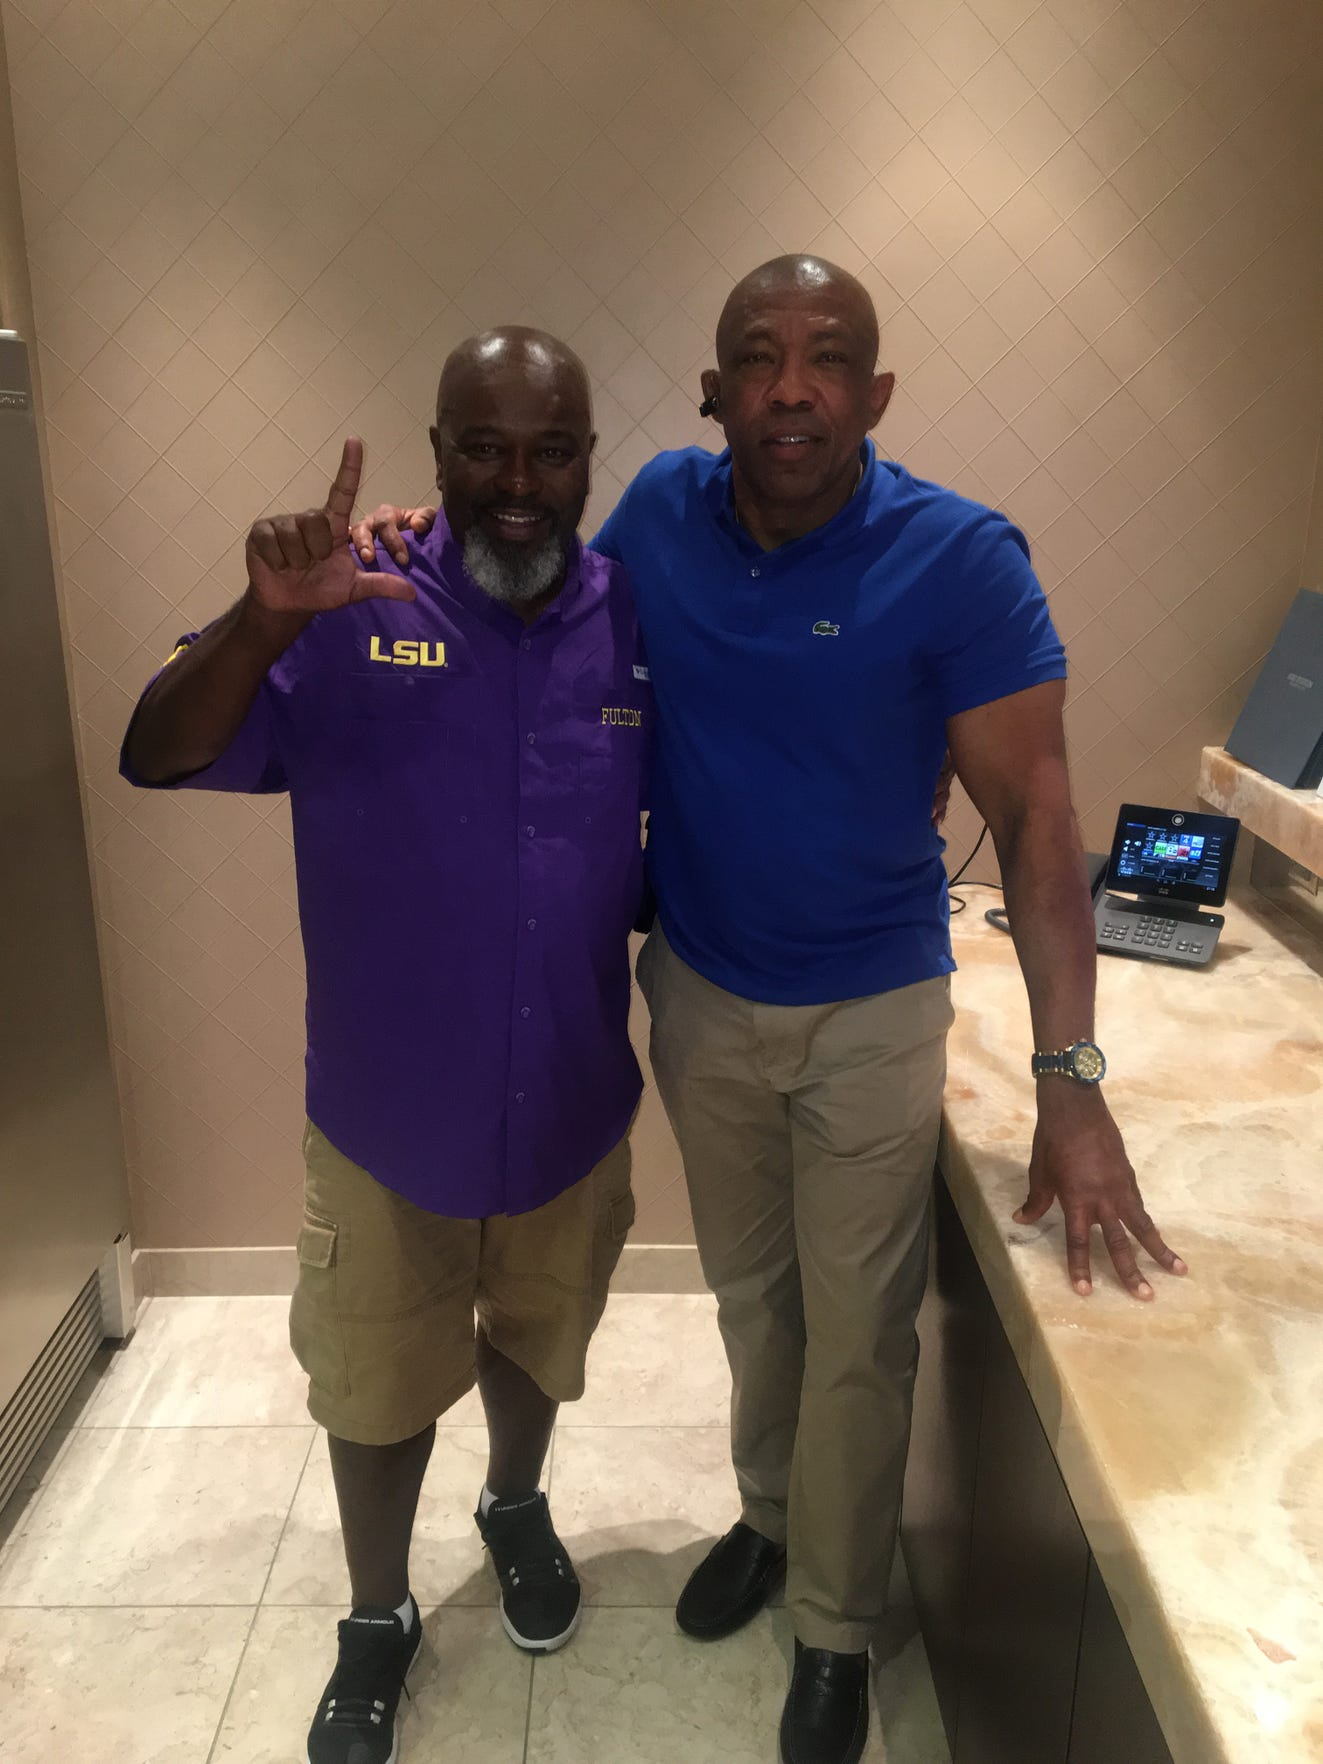 Don Jackson and Keith Fulton pose for a photo together at Kristian Fulton's first game off suspension, LSU's 2018 season-opener vs. Miami in Dallas.